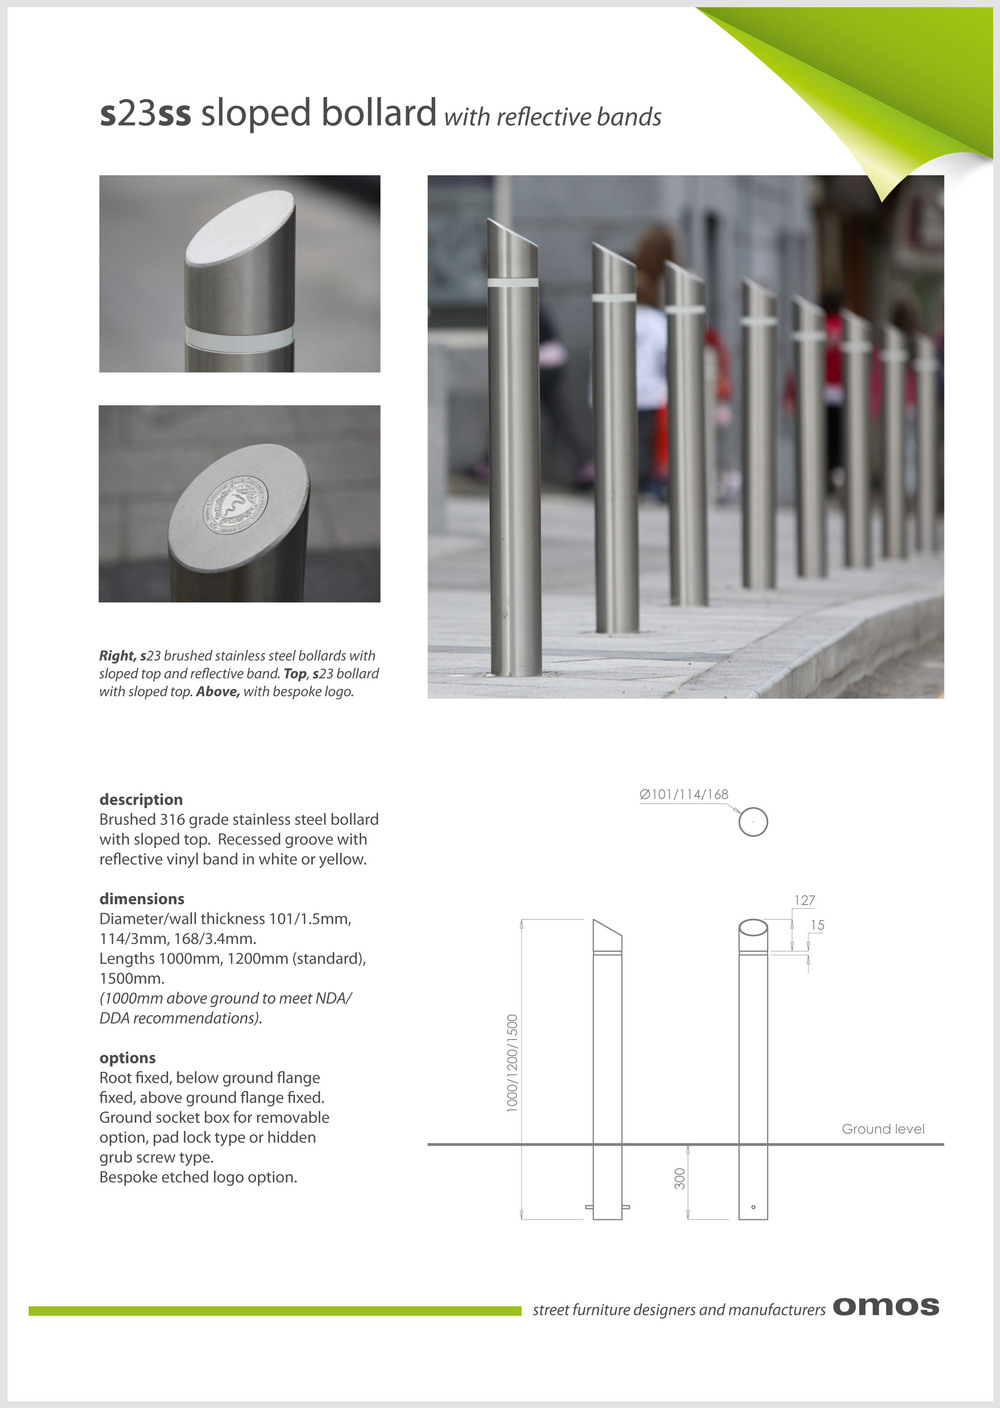 s23ss sloped reflective bollard data sheet.jpg